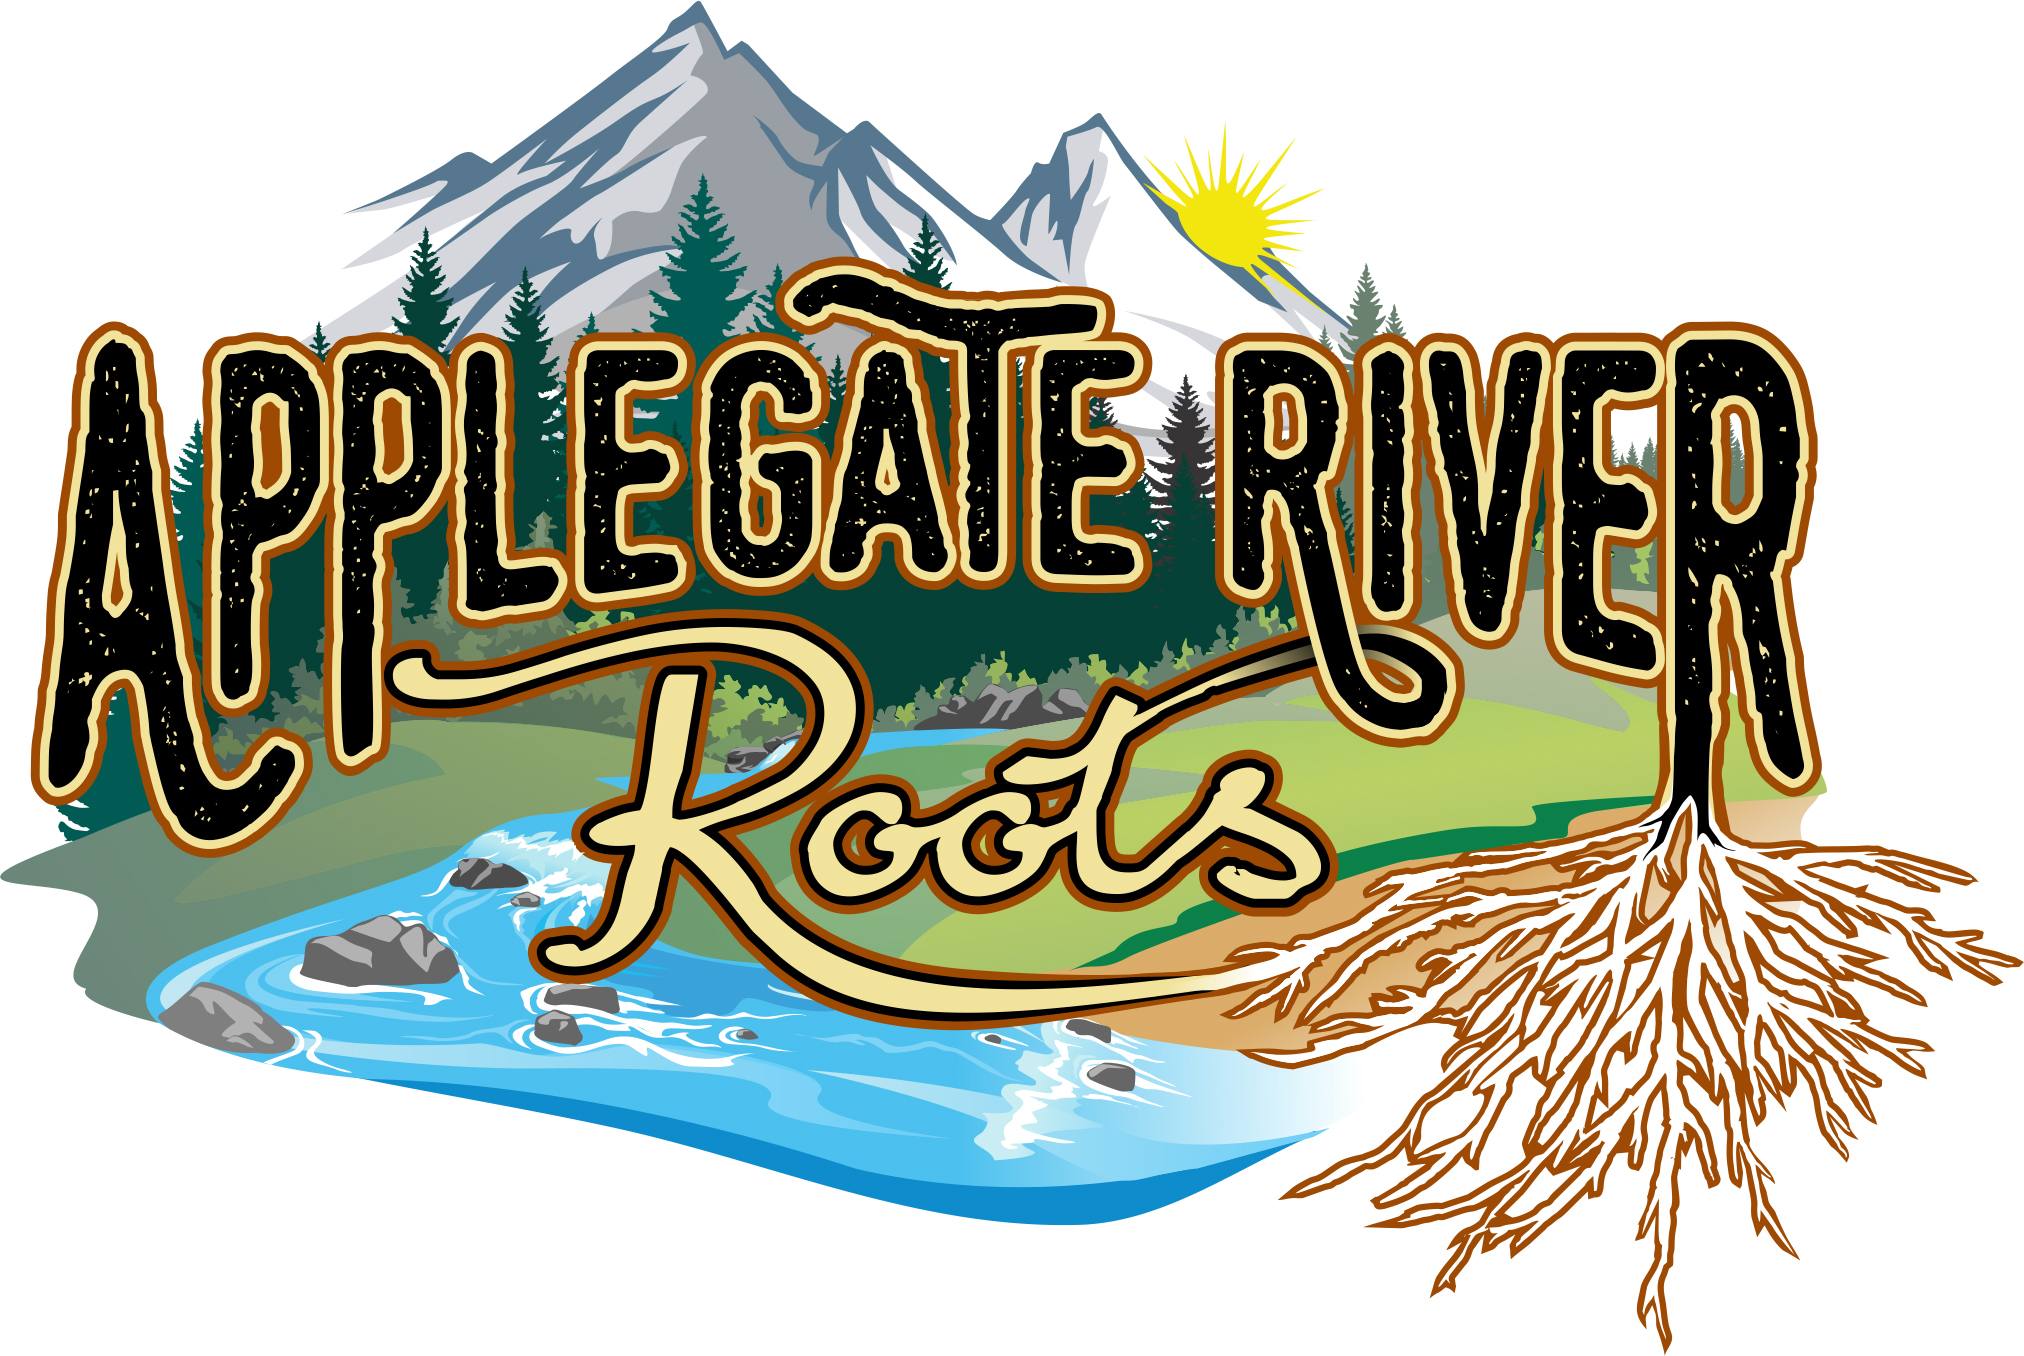 Applegate River Roots